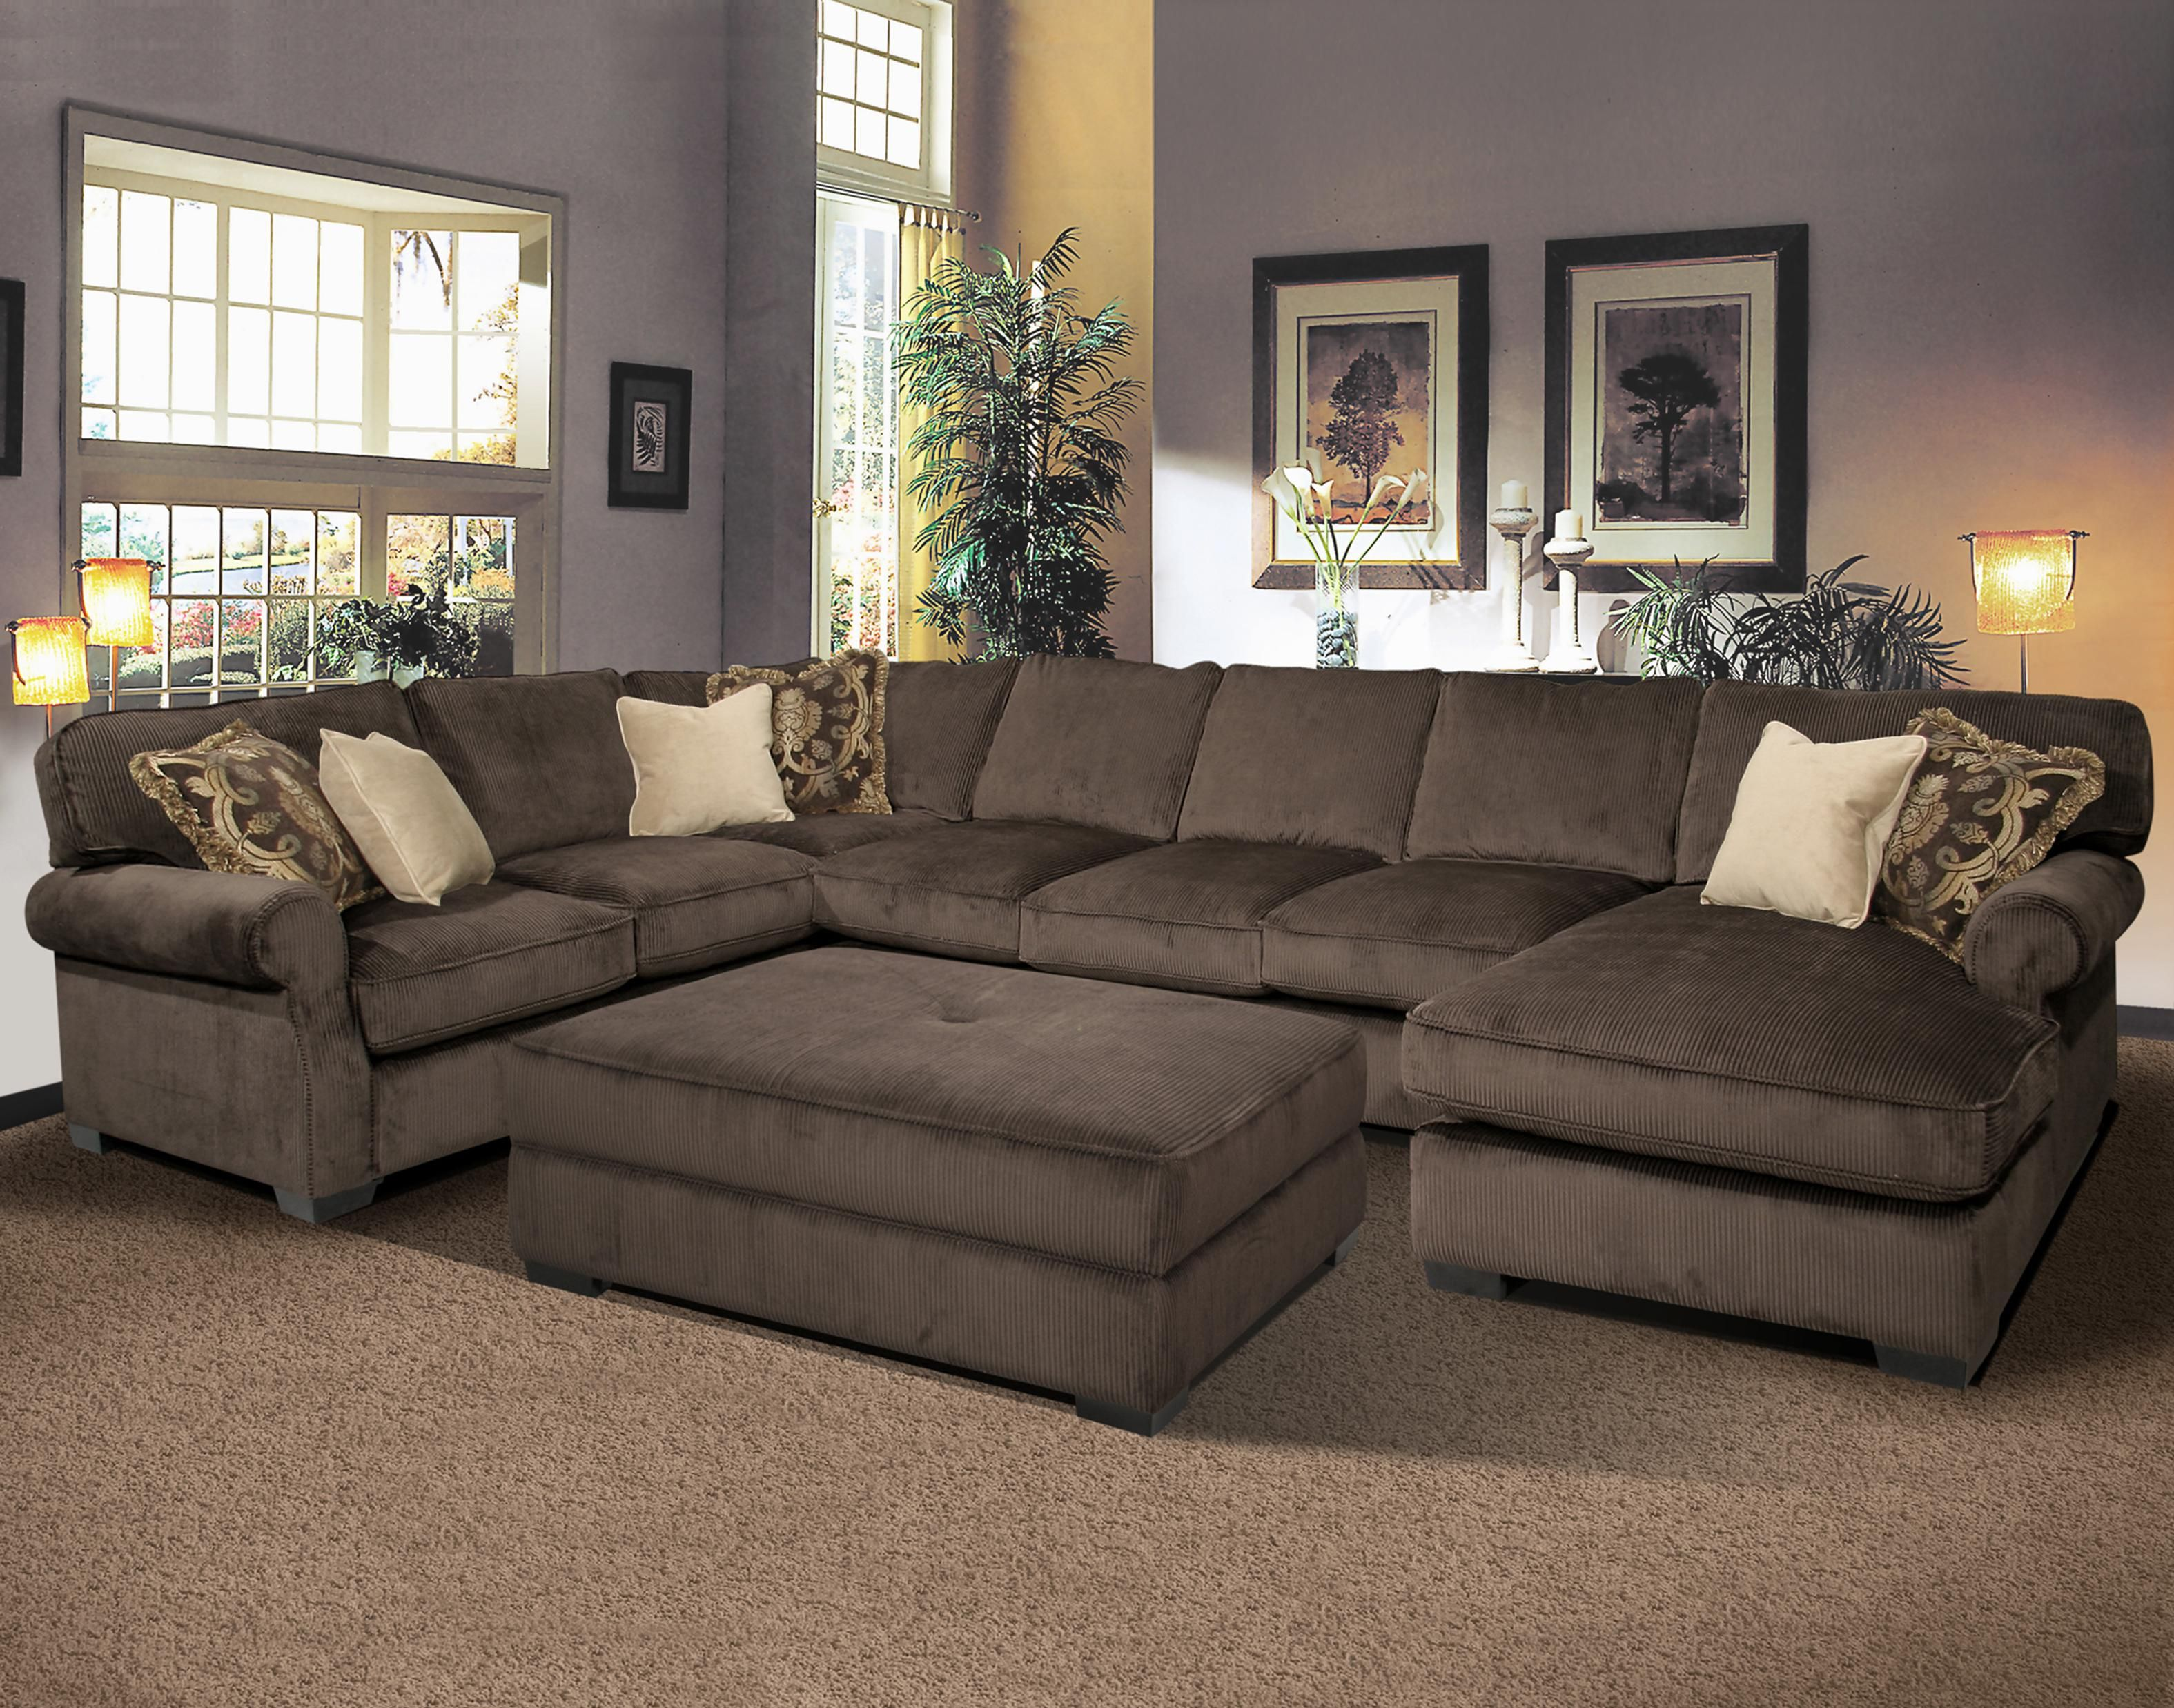 Big Couch Big And Comfy Grand Island Large 7 Seat Sectional Sofa